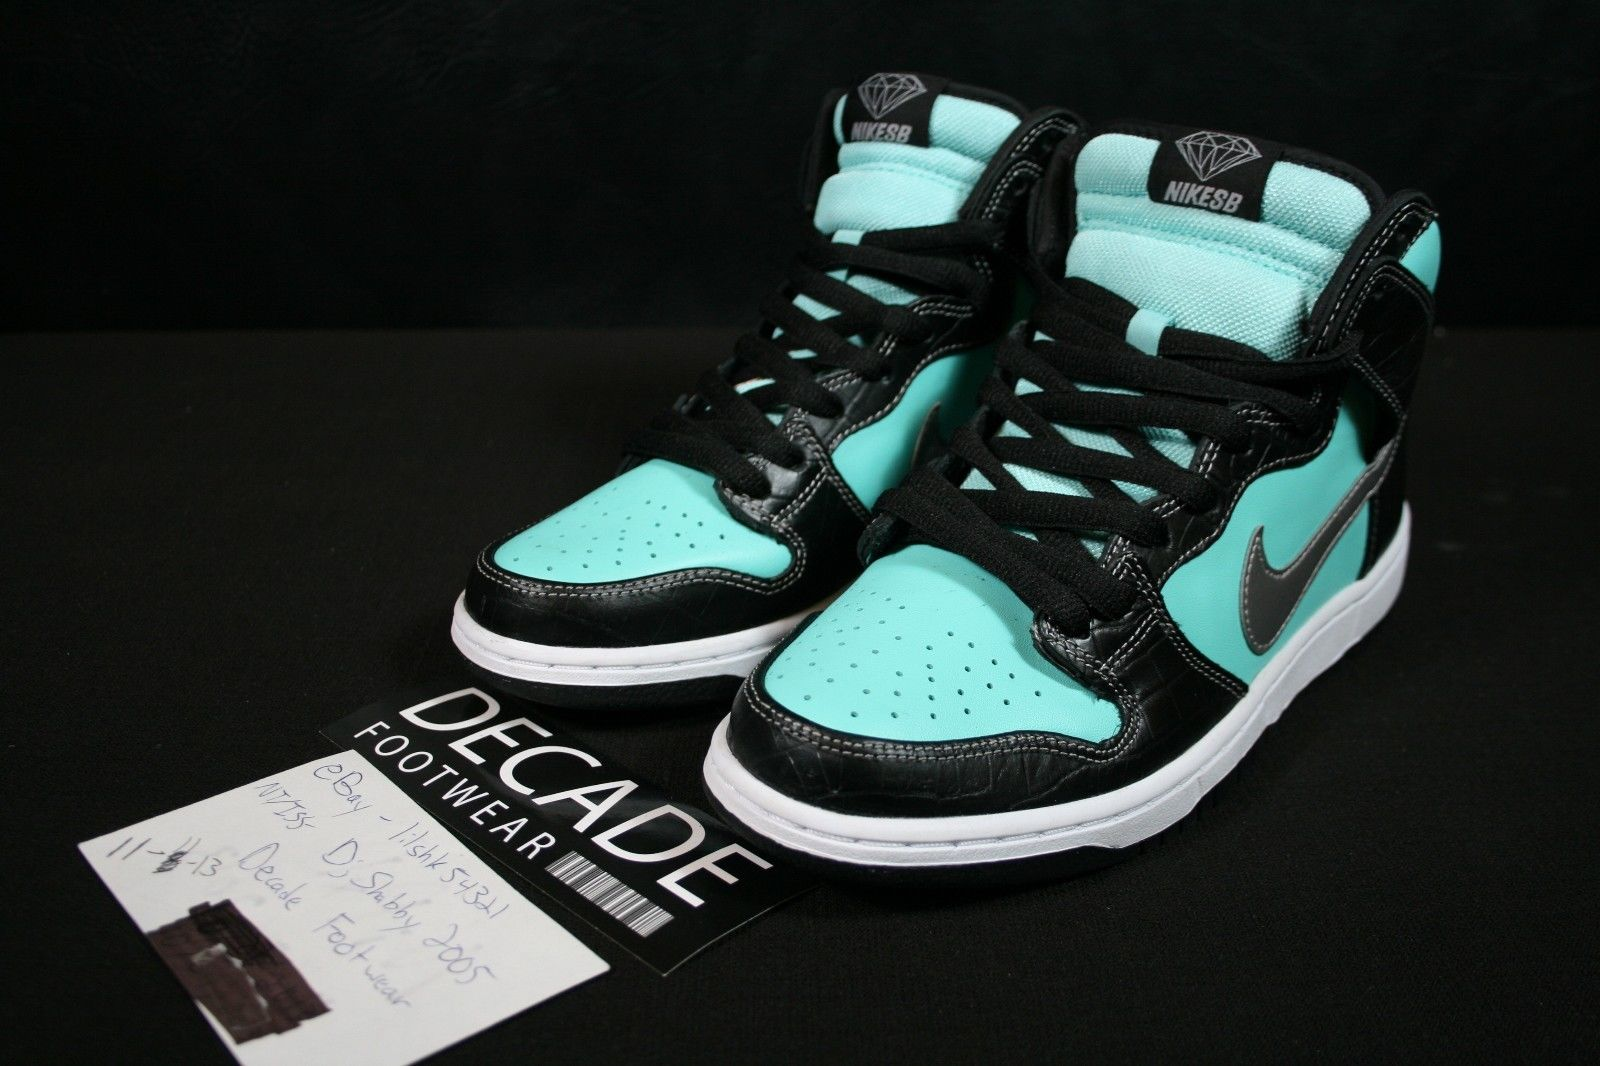 4324d25a2910 ... new arrivals diamond supply co. x nike sb dunk high diamond new images  sole collector